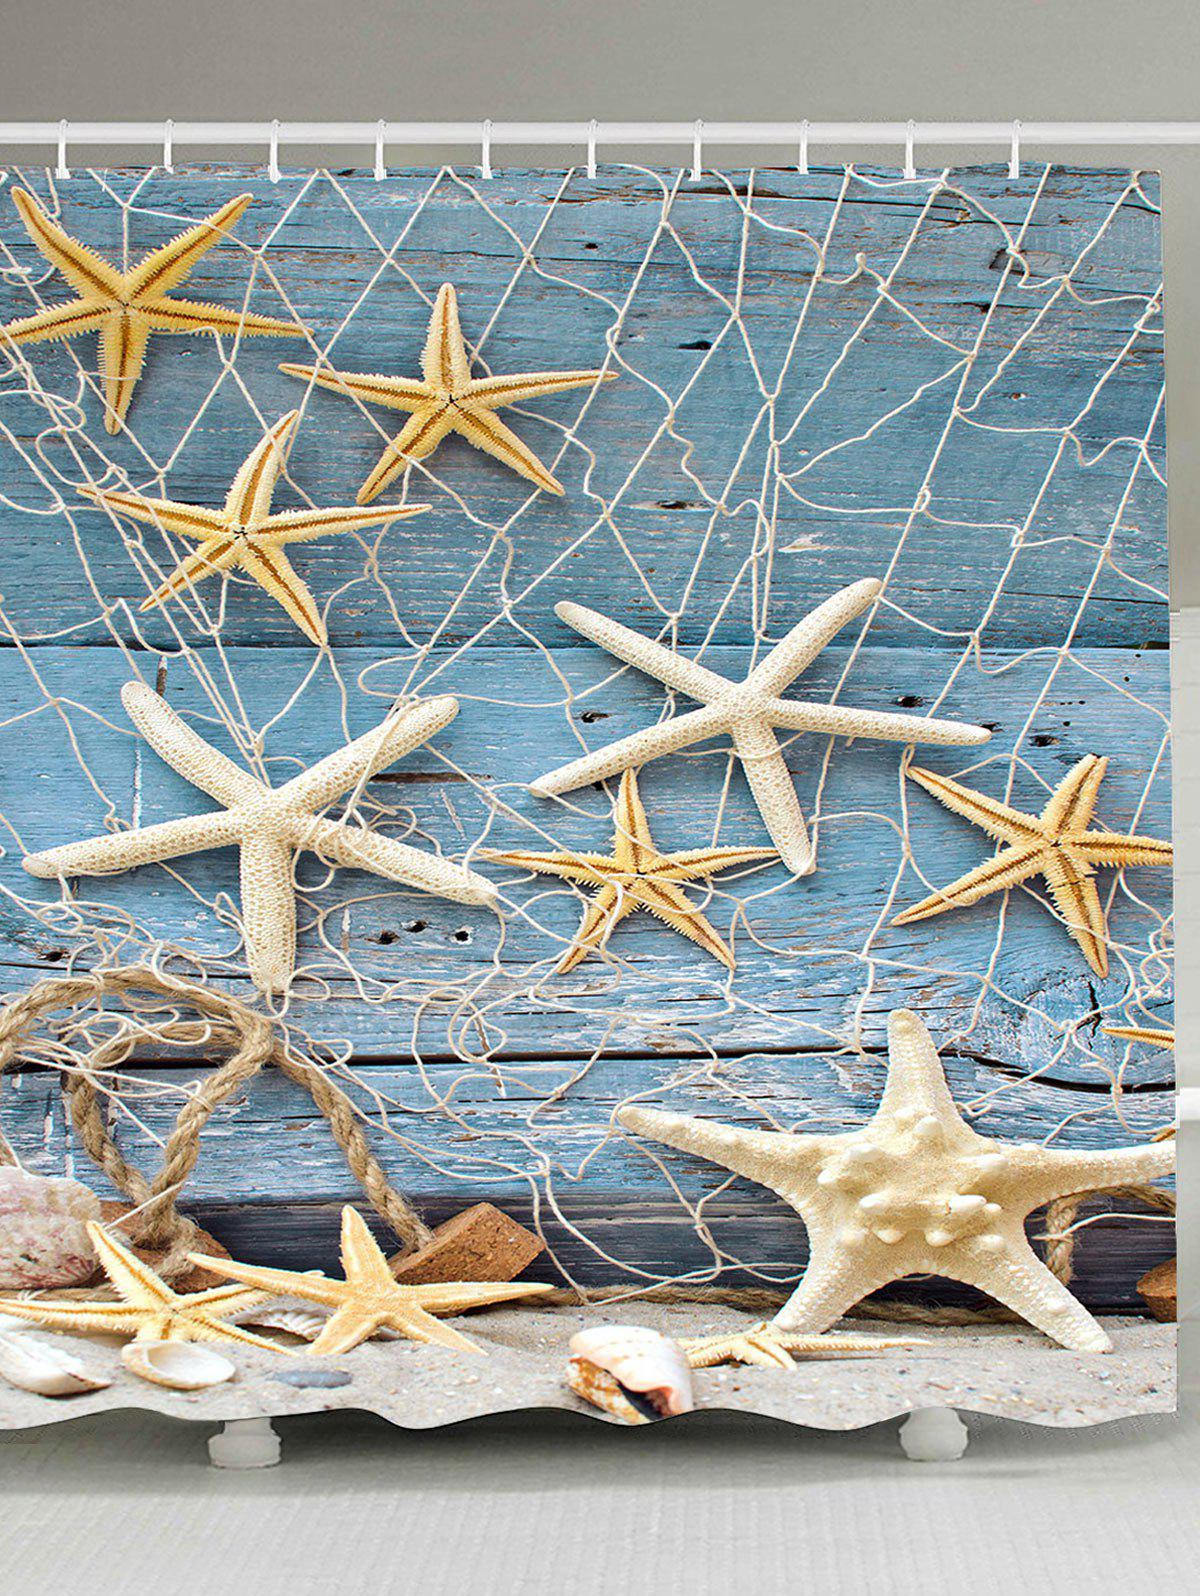 2018 fishing net starfish wood grain nautical shower. Black Bedroom Furniture Sets. Home Design Ideas